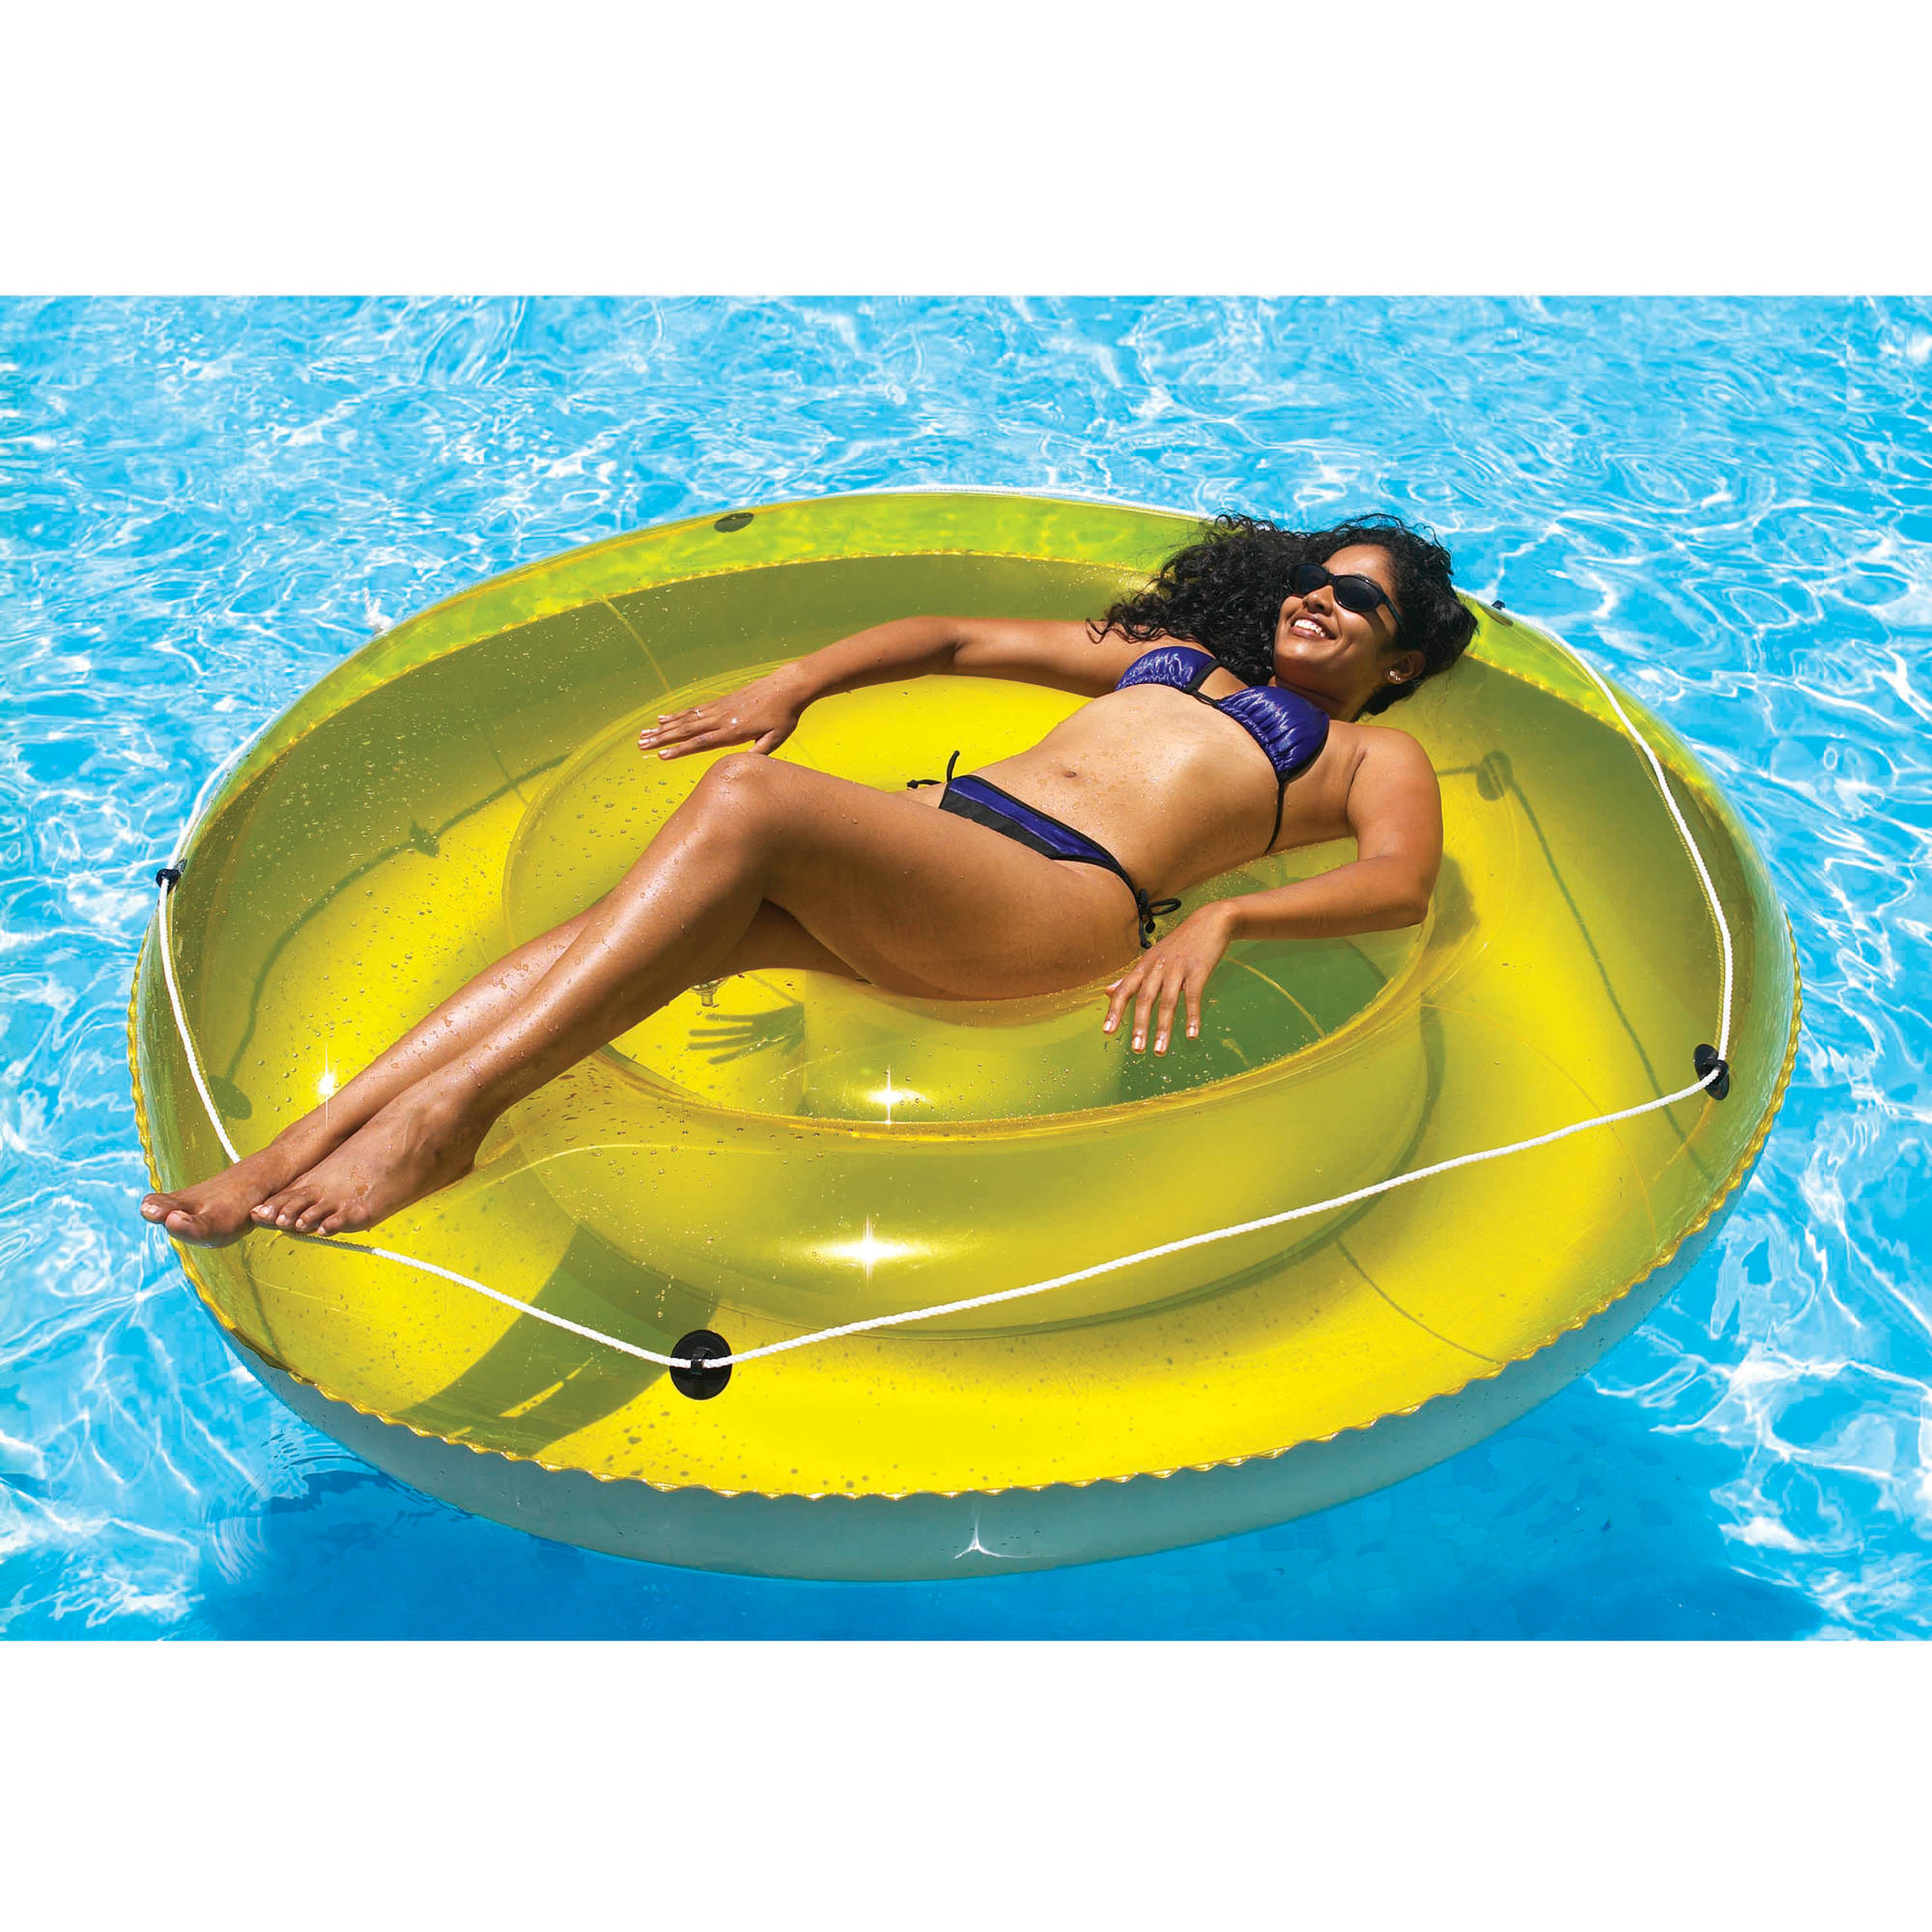 Swimline Multi-Person Island Sun Tan Lounger Pool Float for Swimming Pools